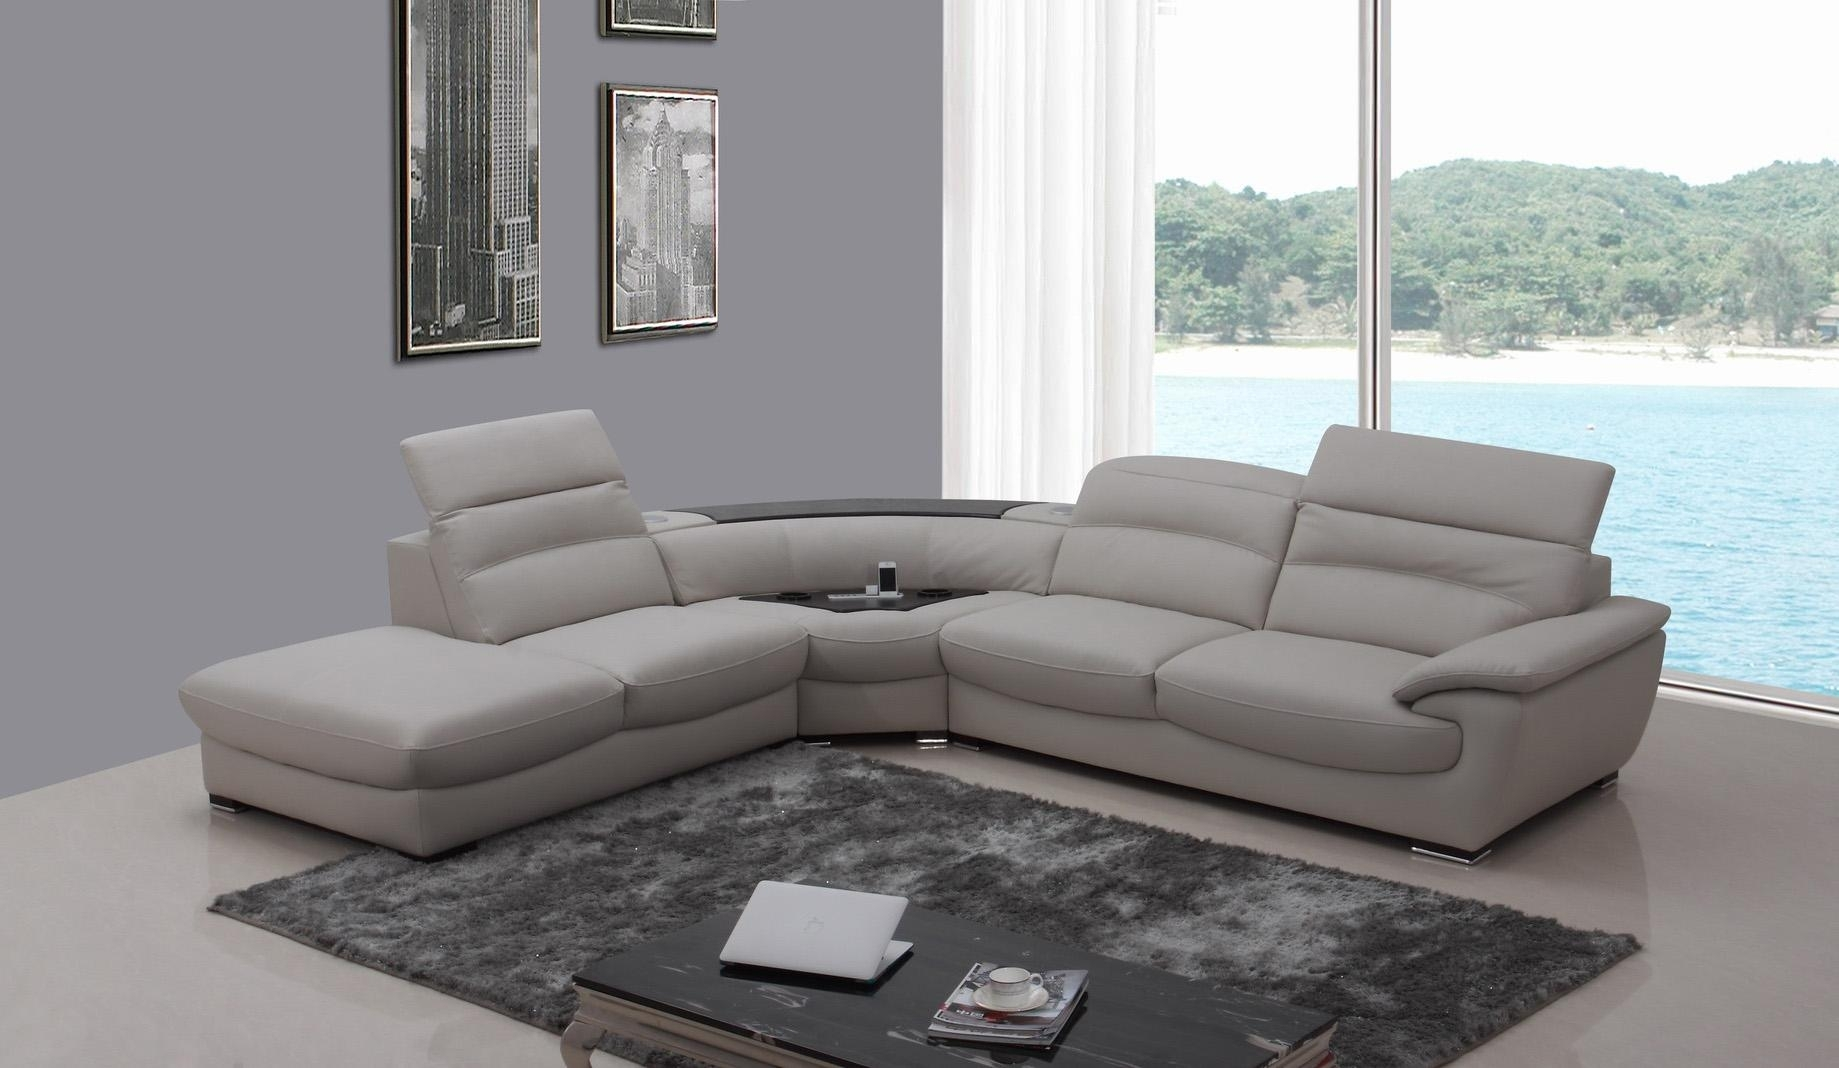 Apartment Size Brown Leather Sofa Black Furniture Sectional With Regarding Vancouver Sectional Sofas (View 7 of 10)